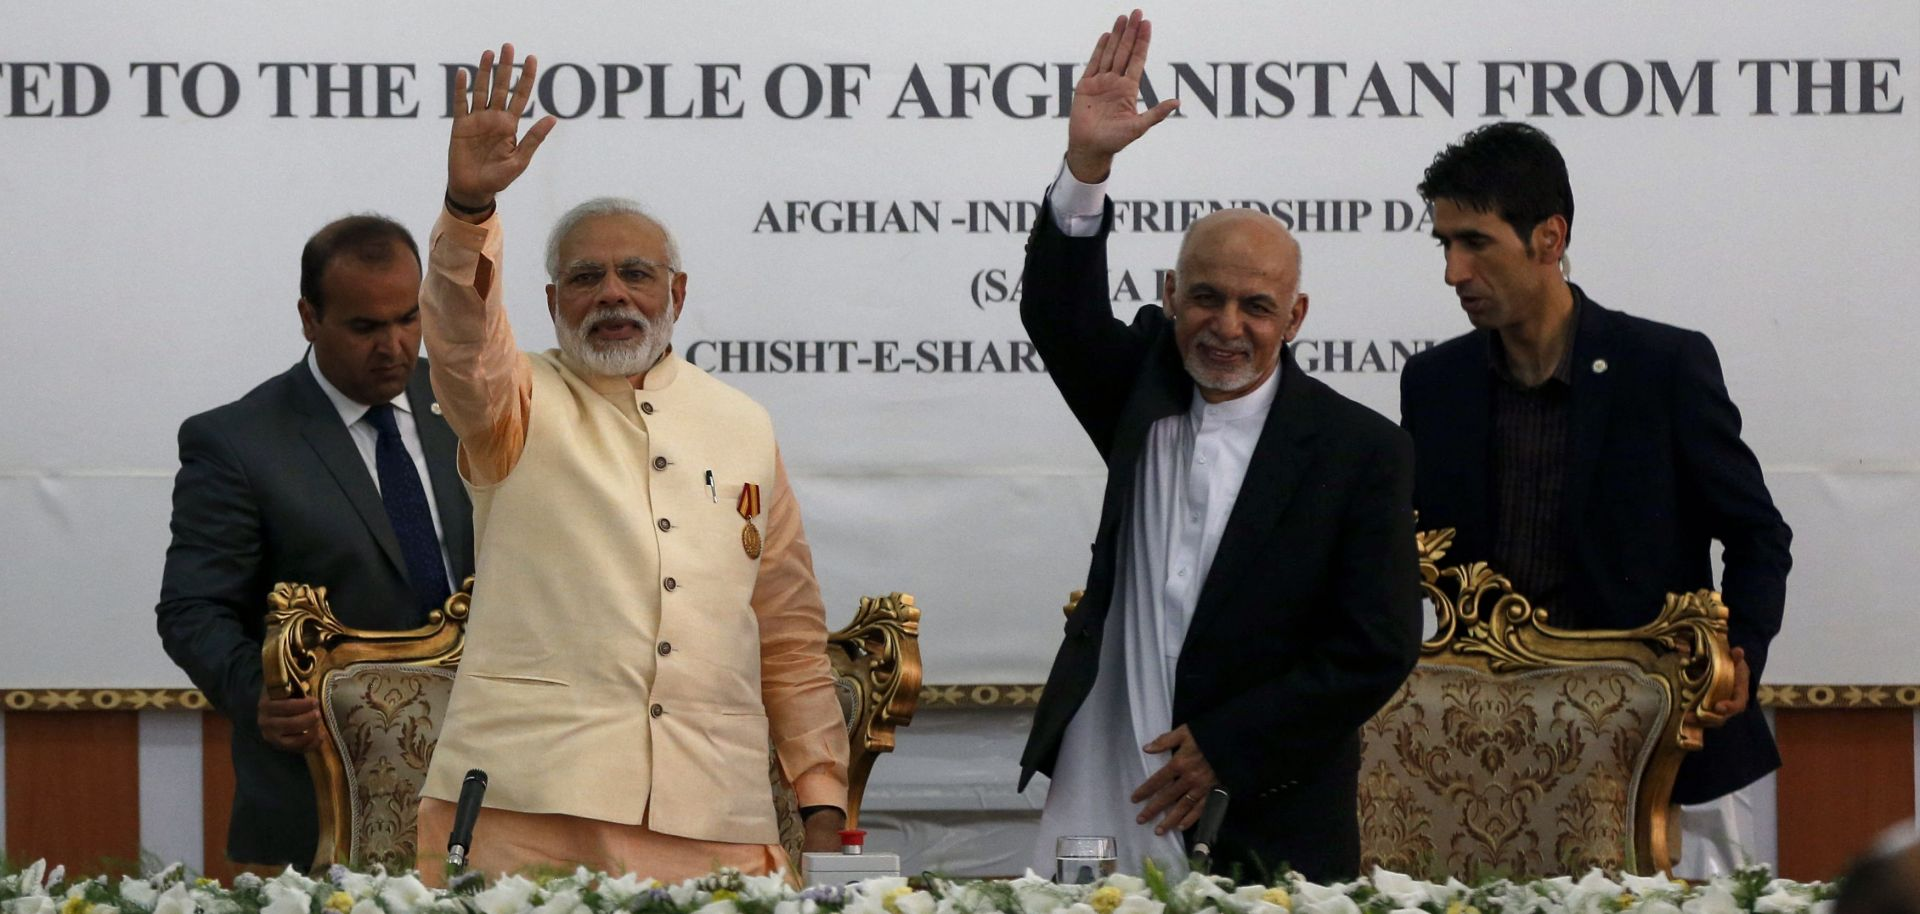 Indian Prime Minister Narendra Modi (left) and then-Afghan President Ashraf Ghani wave during the inauguration of the Afghan-India Friendship Dam in Herat, Afghanistan, on June 4, 2016.